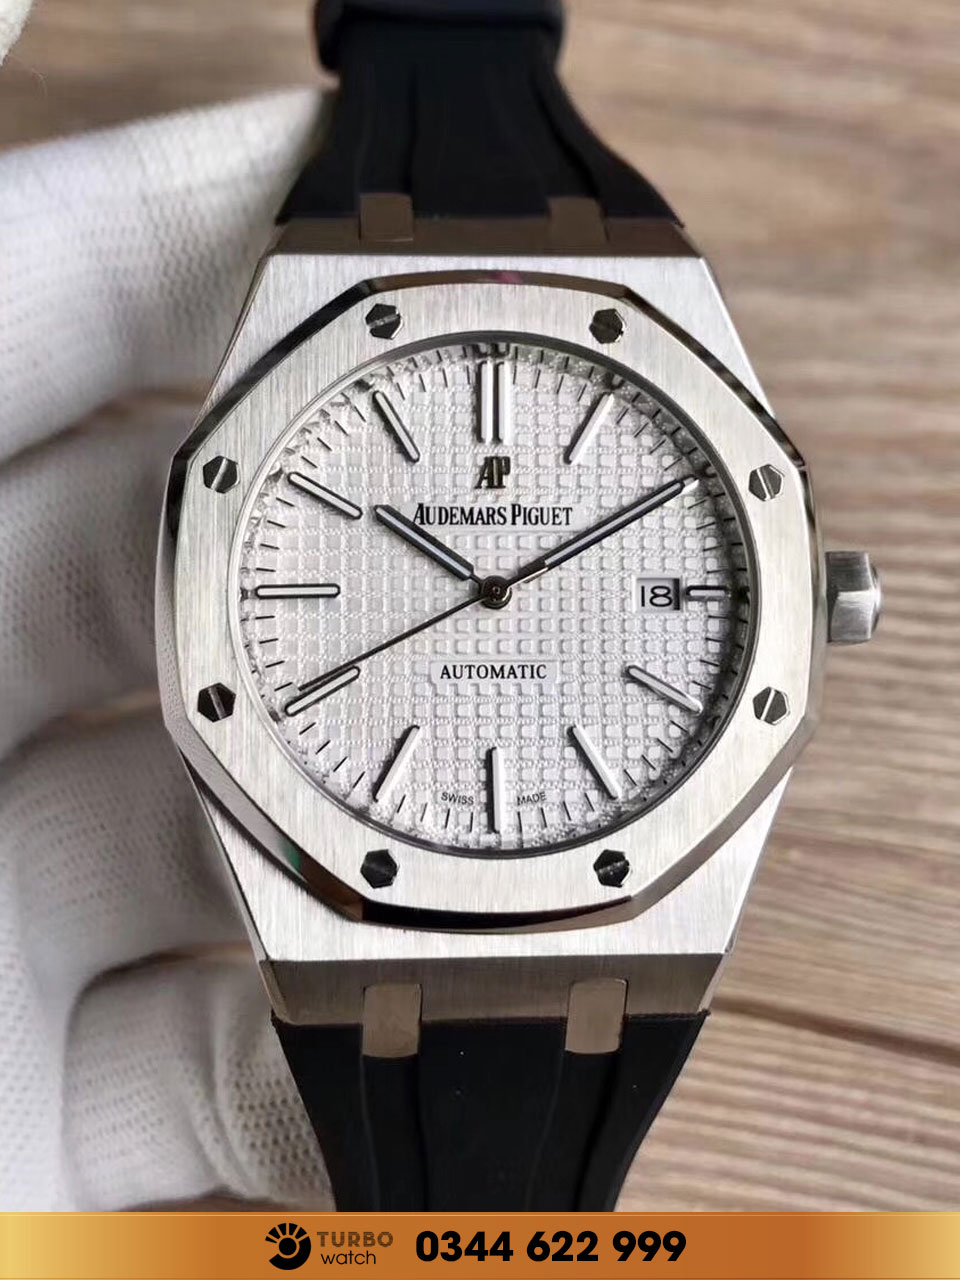 Audemas piguet Royal Oak  15500ST  replica 1-1 cao cấp